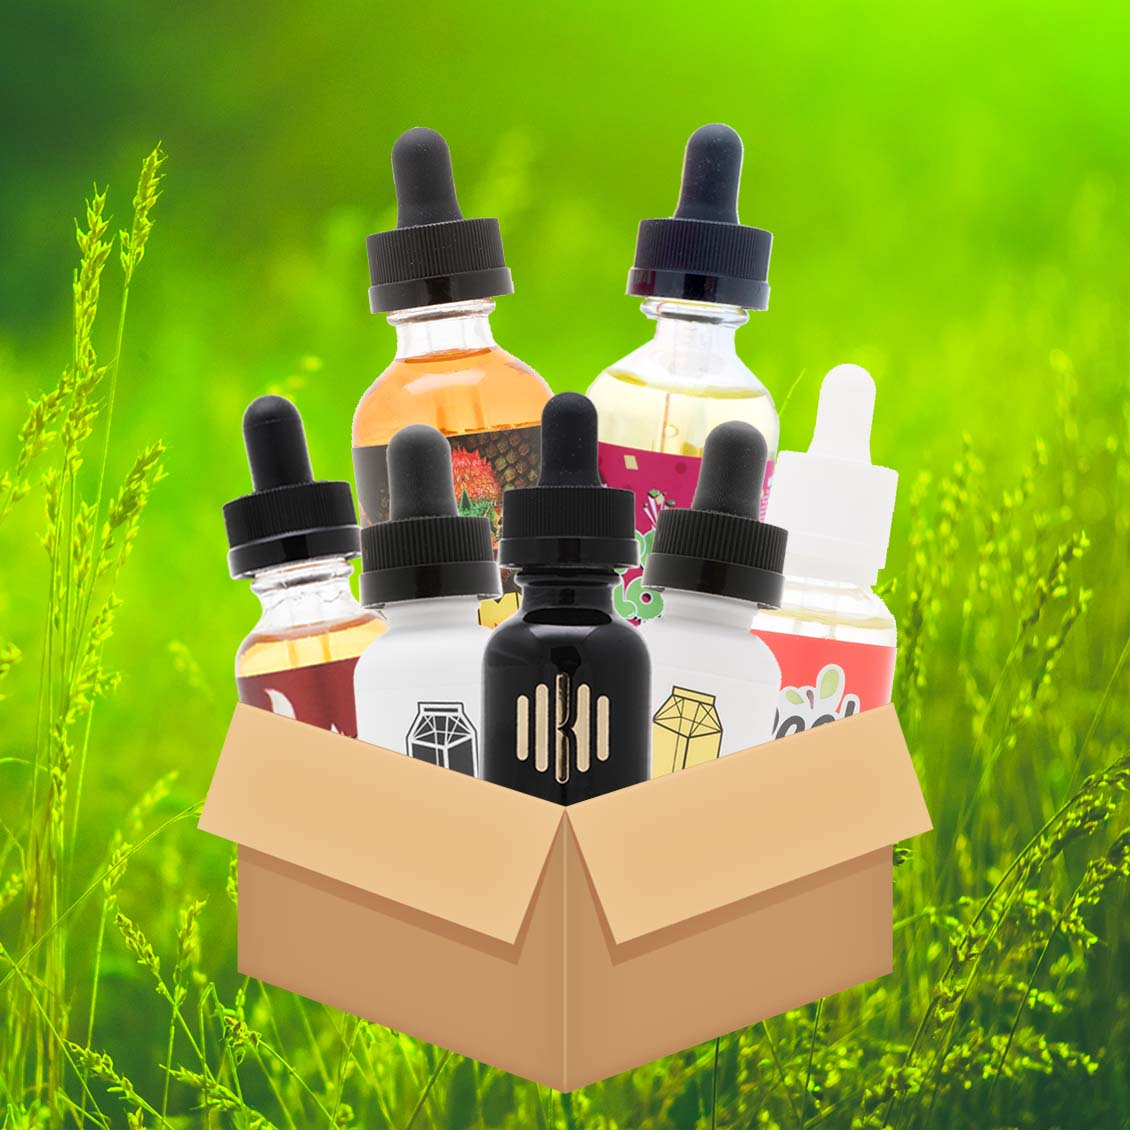 Premium Variety Bundle w/ ANML Unleashed, Pop Clouds, Milkman and More - 300mL! Photo